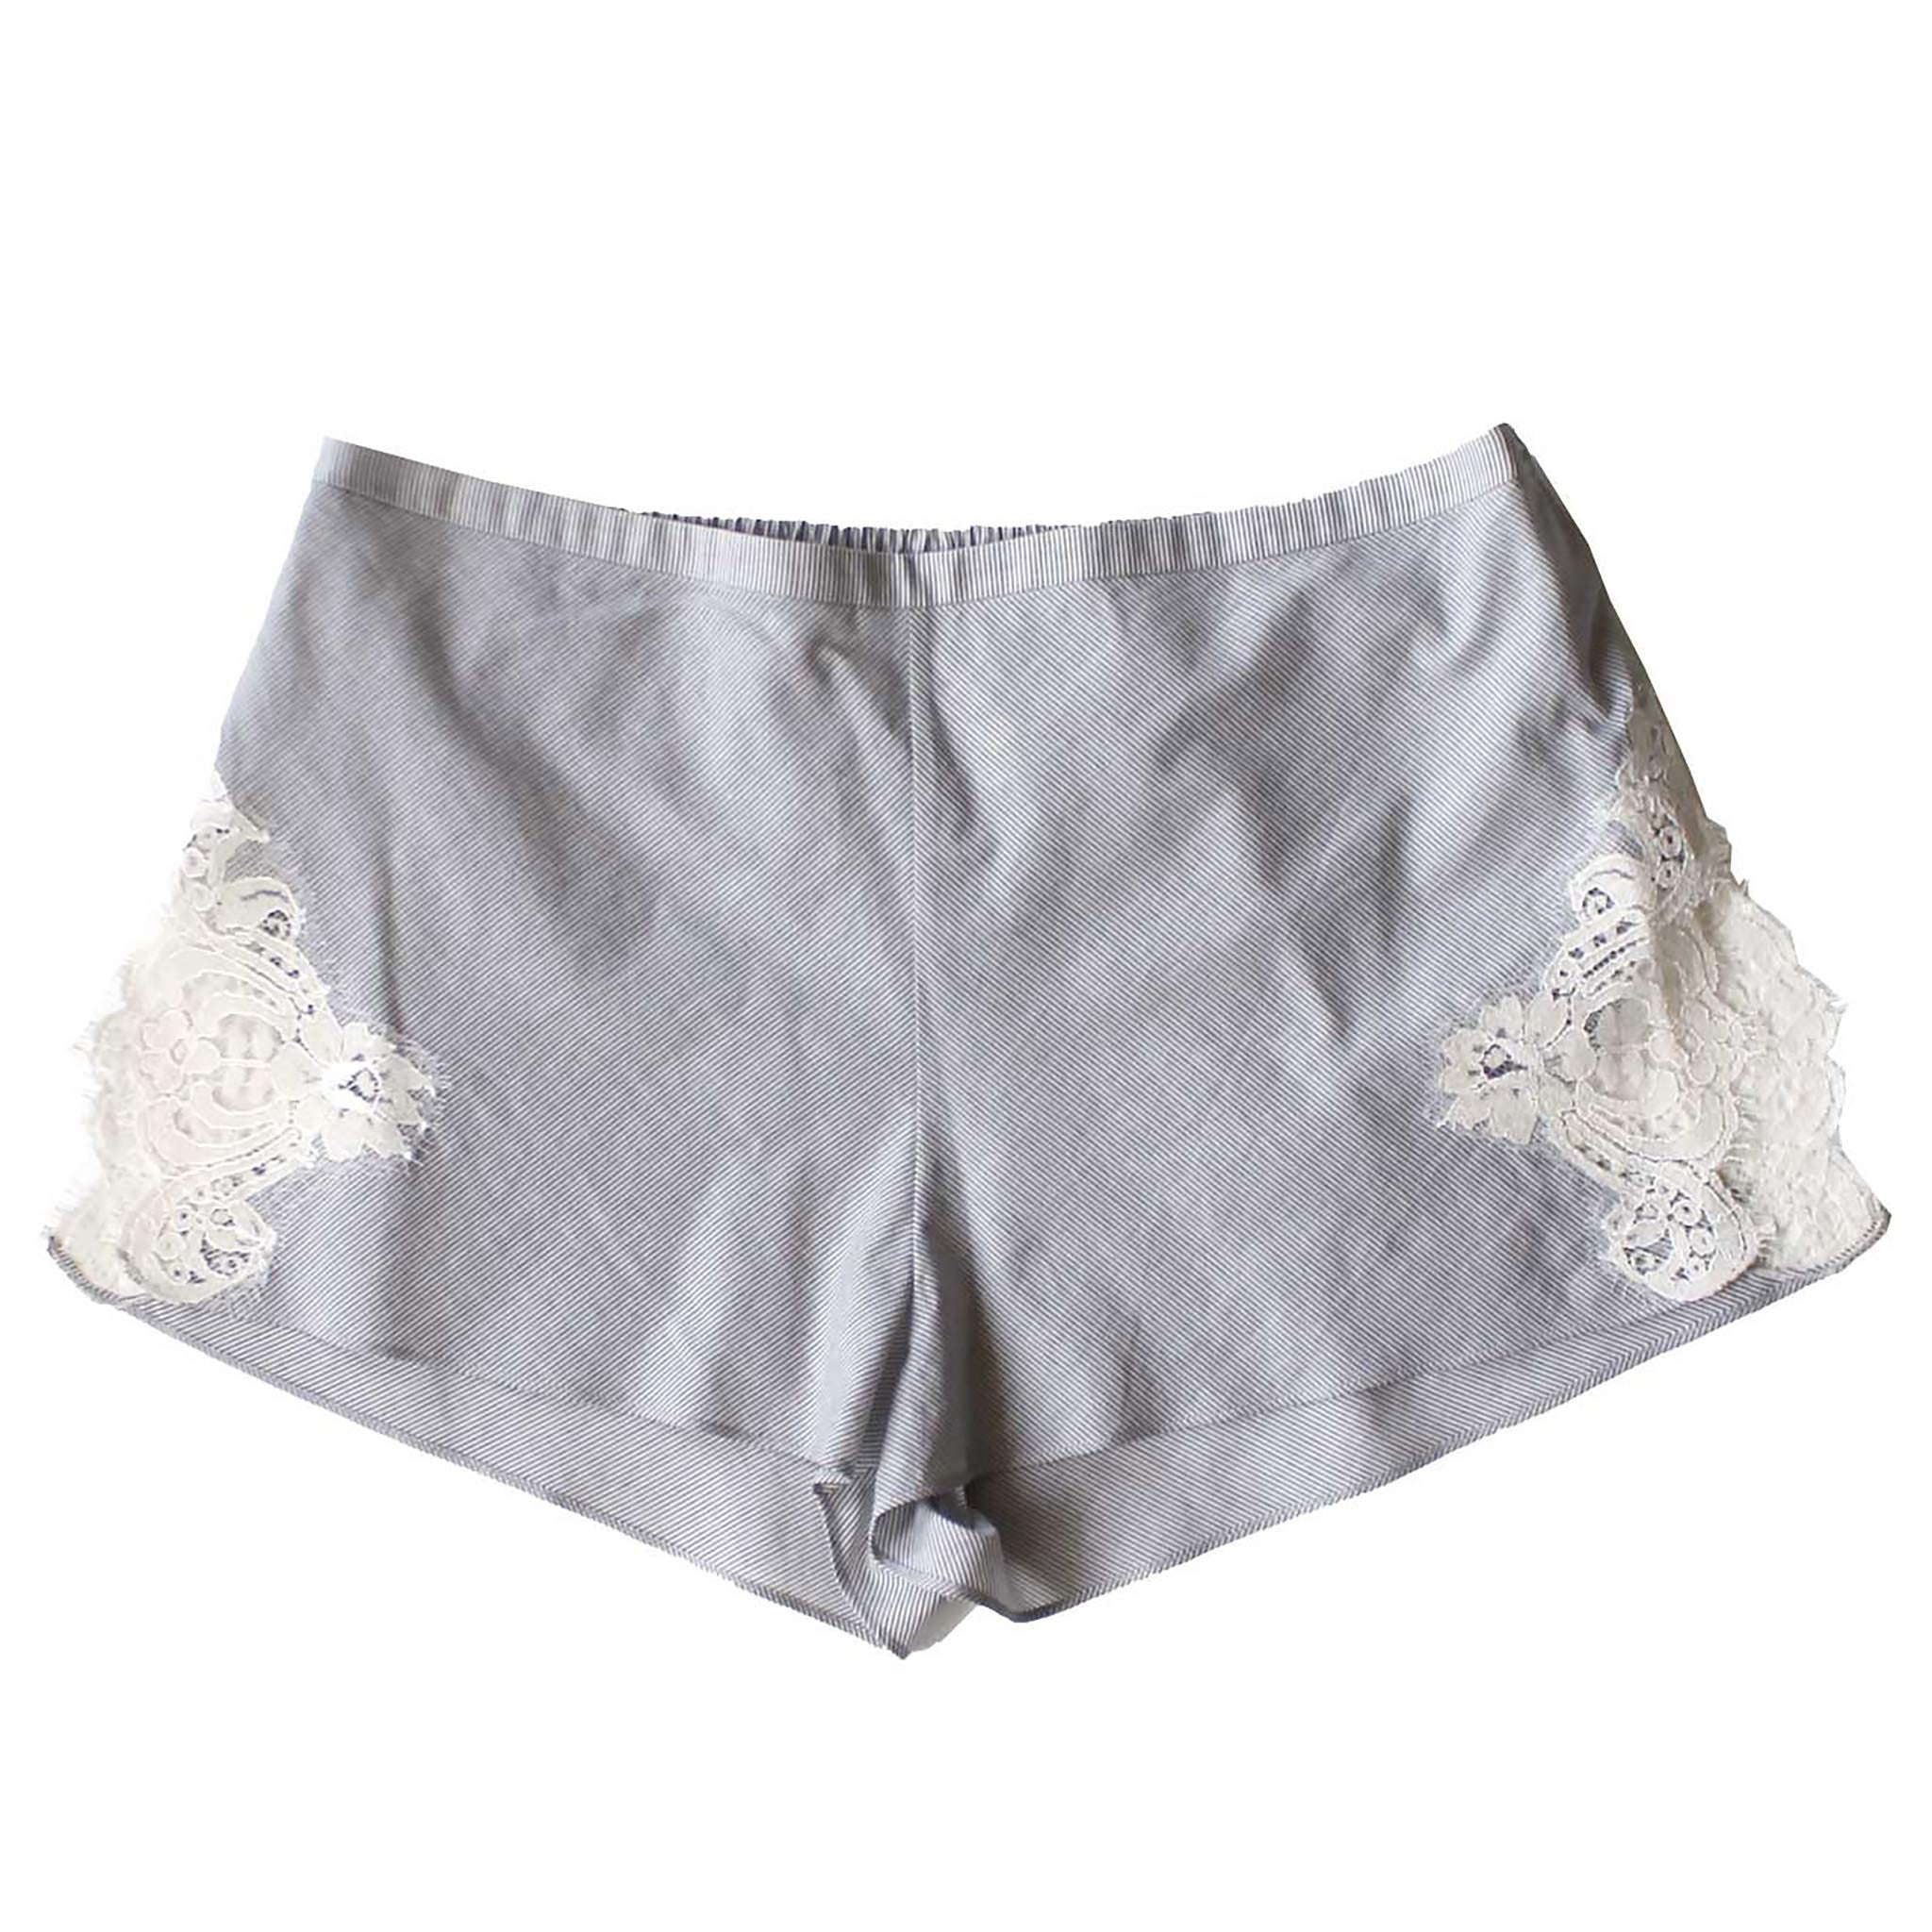 FINAL SALE - Sita Knickers in Italian Grey Stripe Cotton